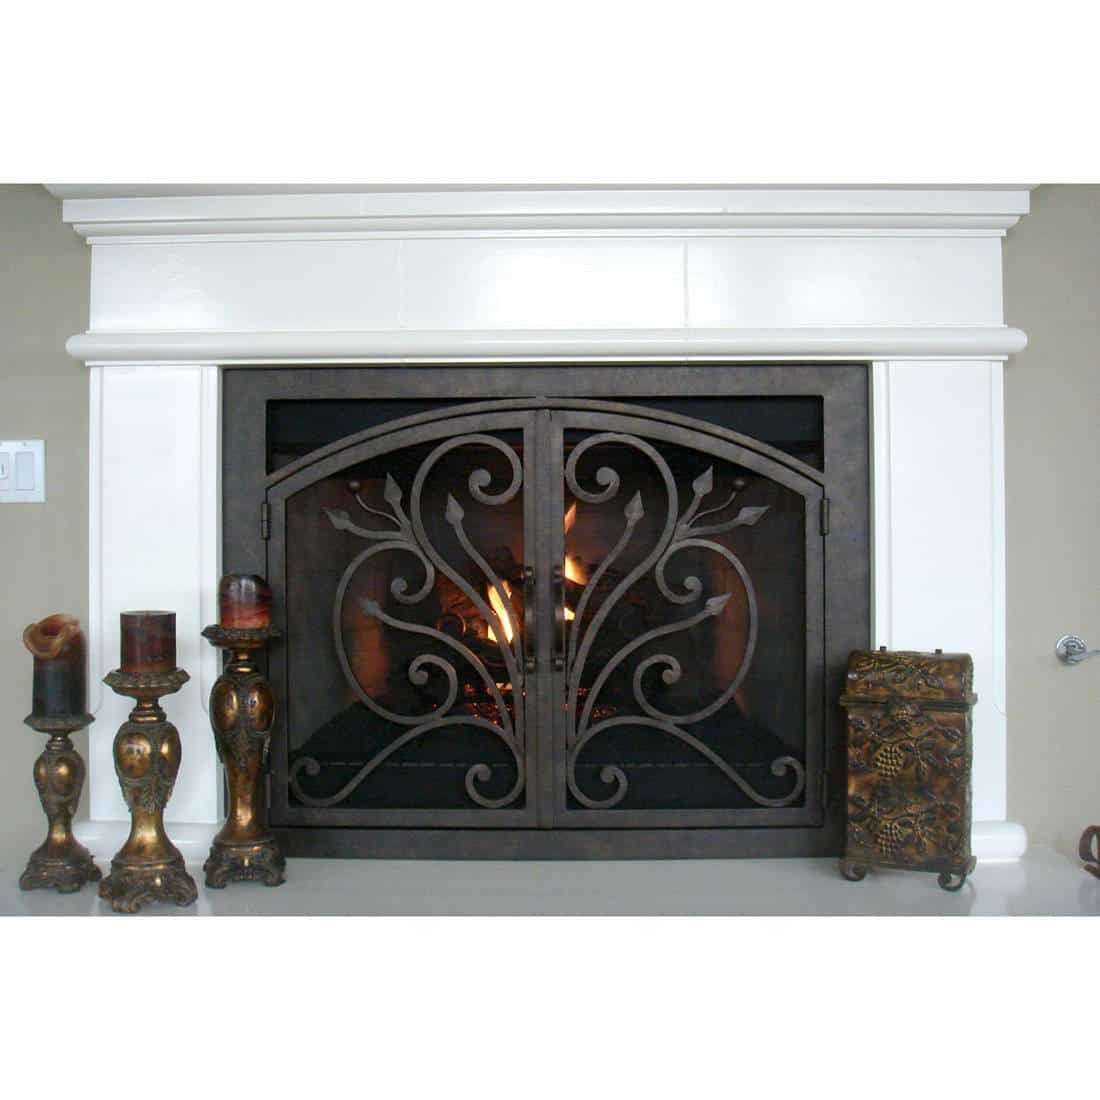 Orchid Arched Inside Rectangular Fireplace Door Fireplace Doors Fireplace French Fireplace